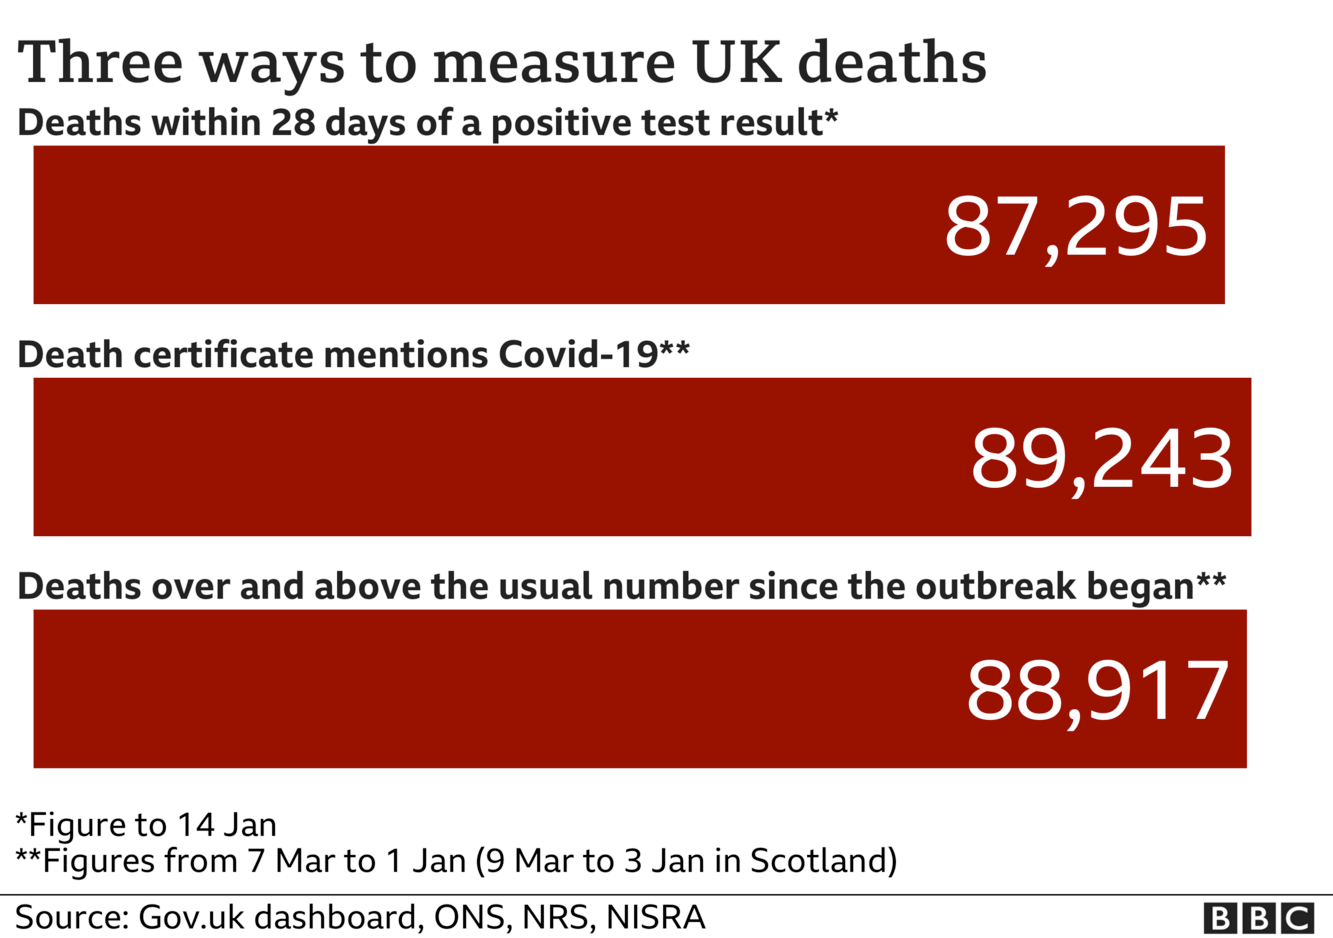 Chart showing three different totals for coronavirus deaths - the government measures all deaths within 28 days of a positive test, that total is 87,295. The ONS includes all deaths where coronavirus was mentioned on the death certificate, that total is 89,243 and the final total includes all deaths over and above the average for the time of year and that total is now 88,917. Updated 15th Jan.